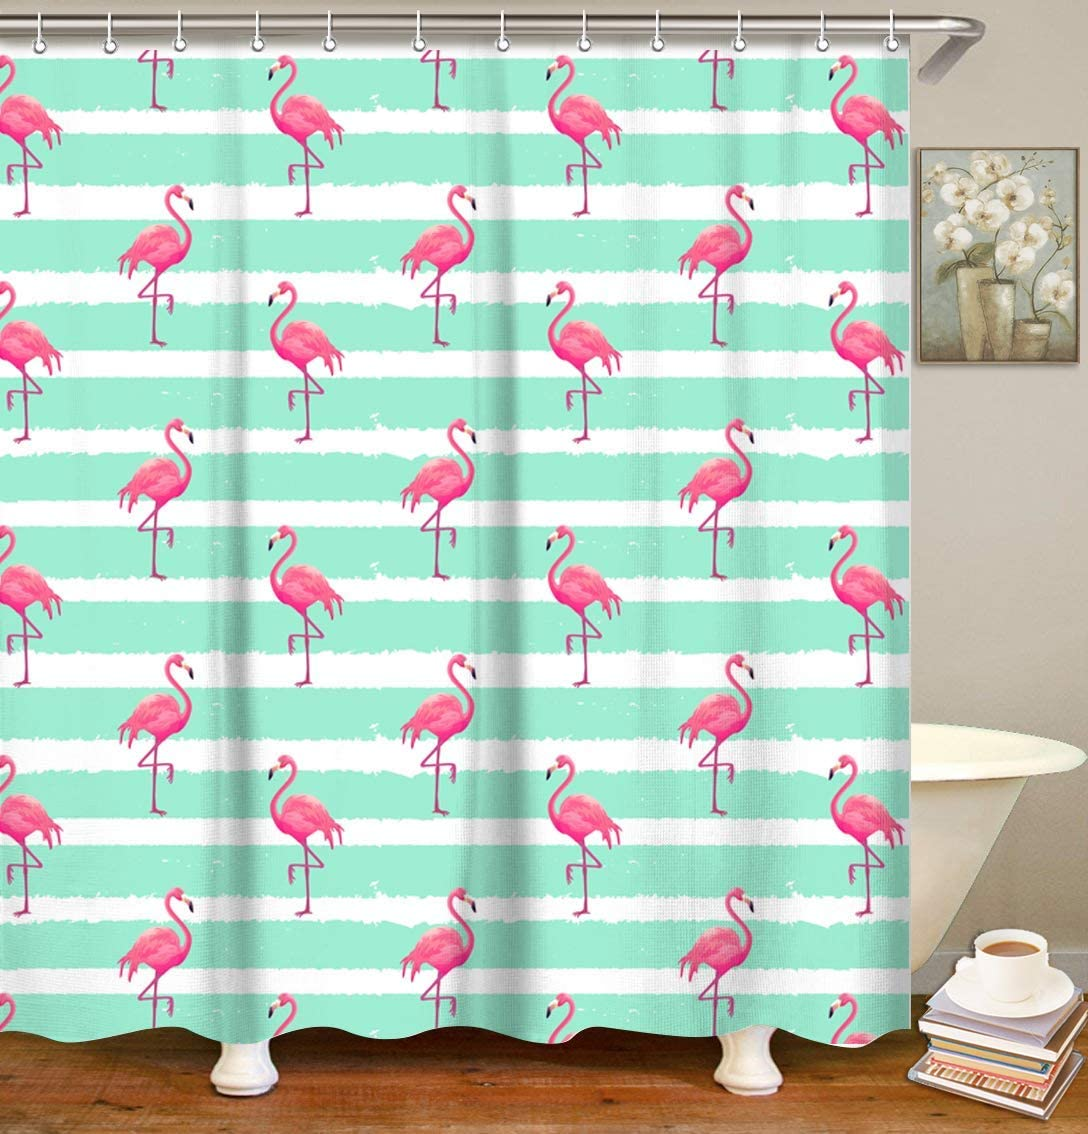 flamingo-gifts-shower-curtain